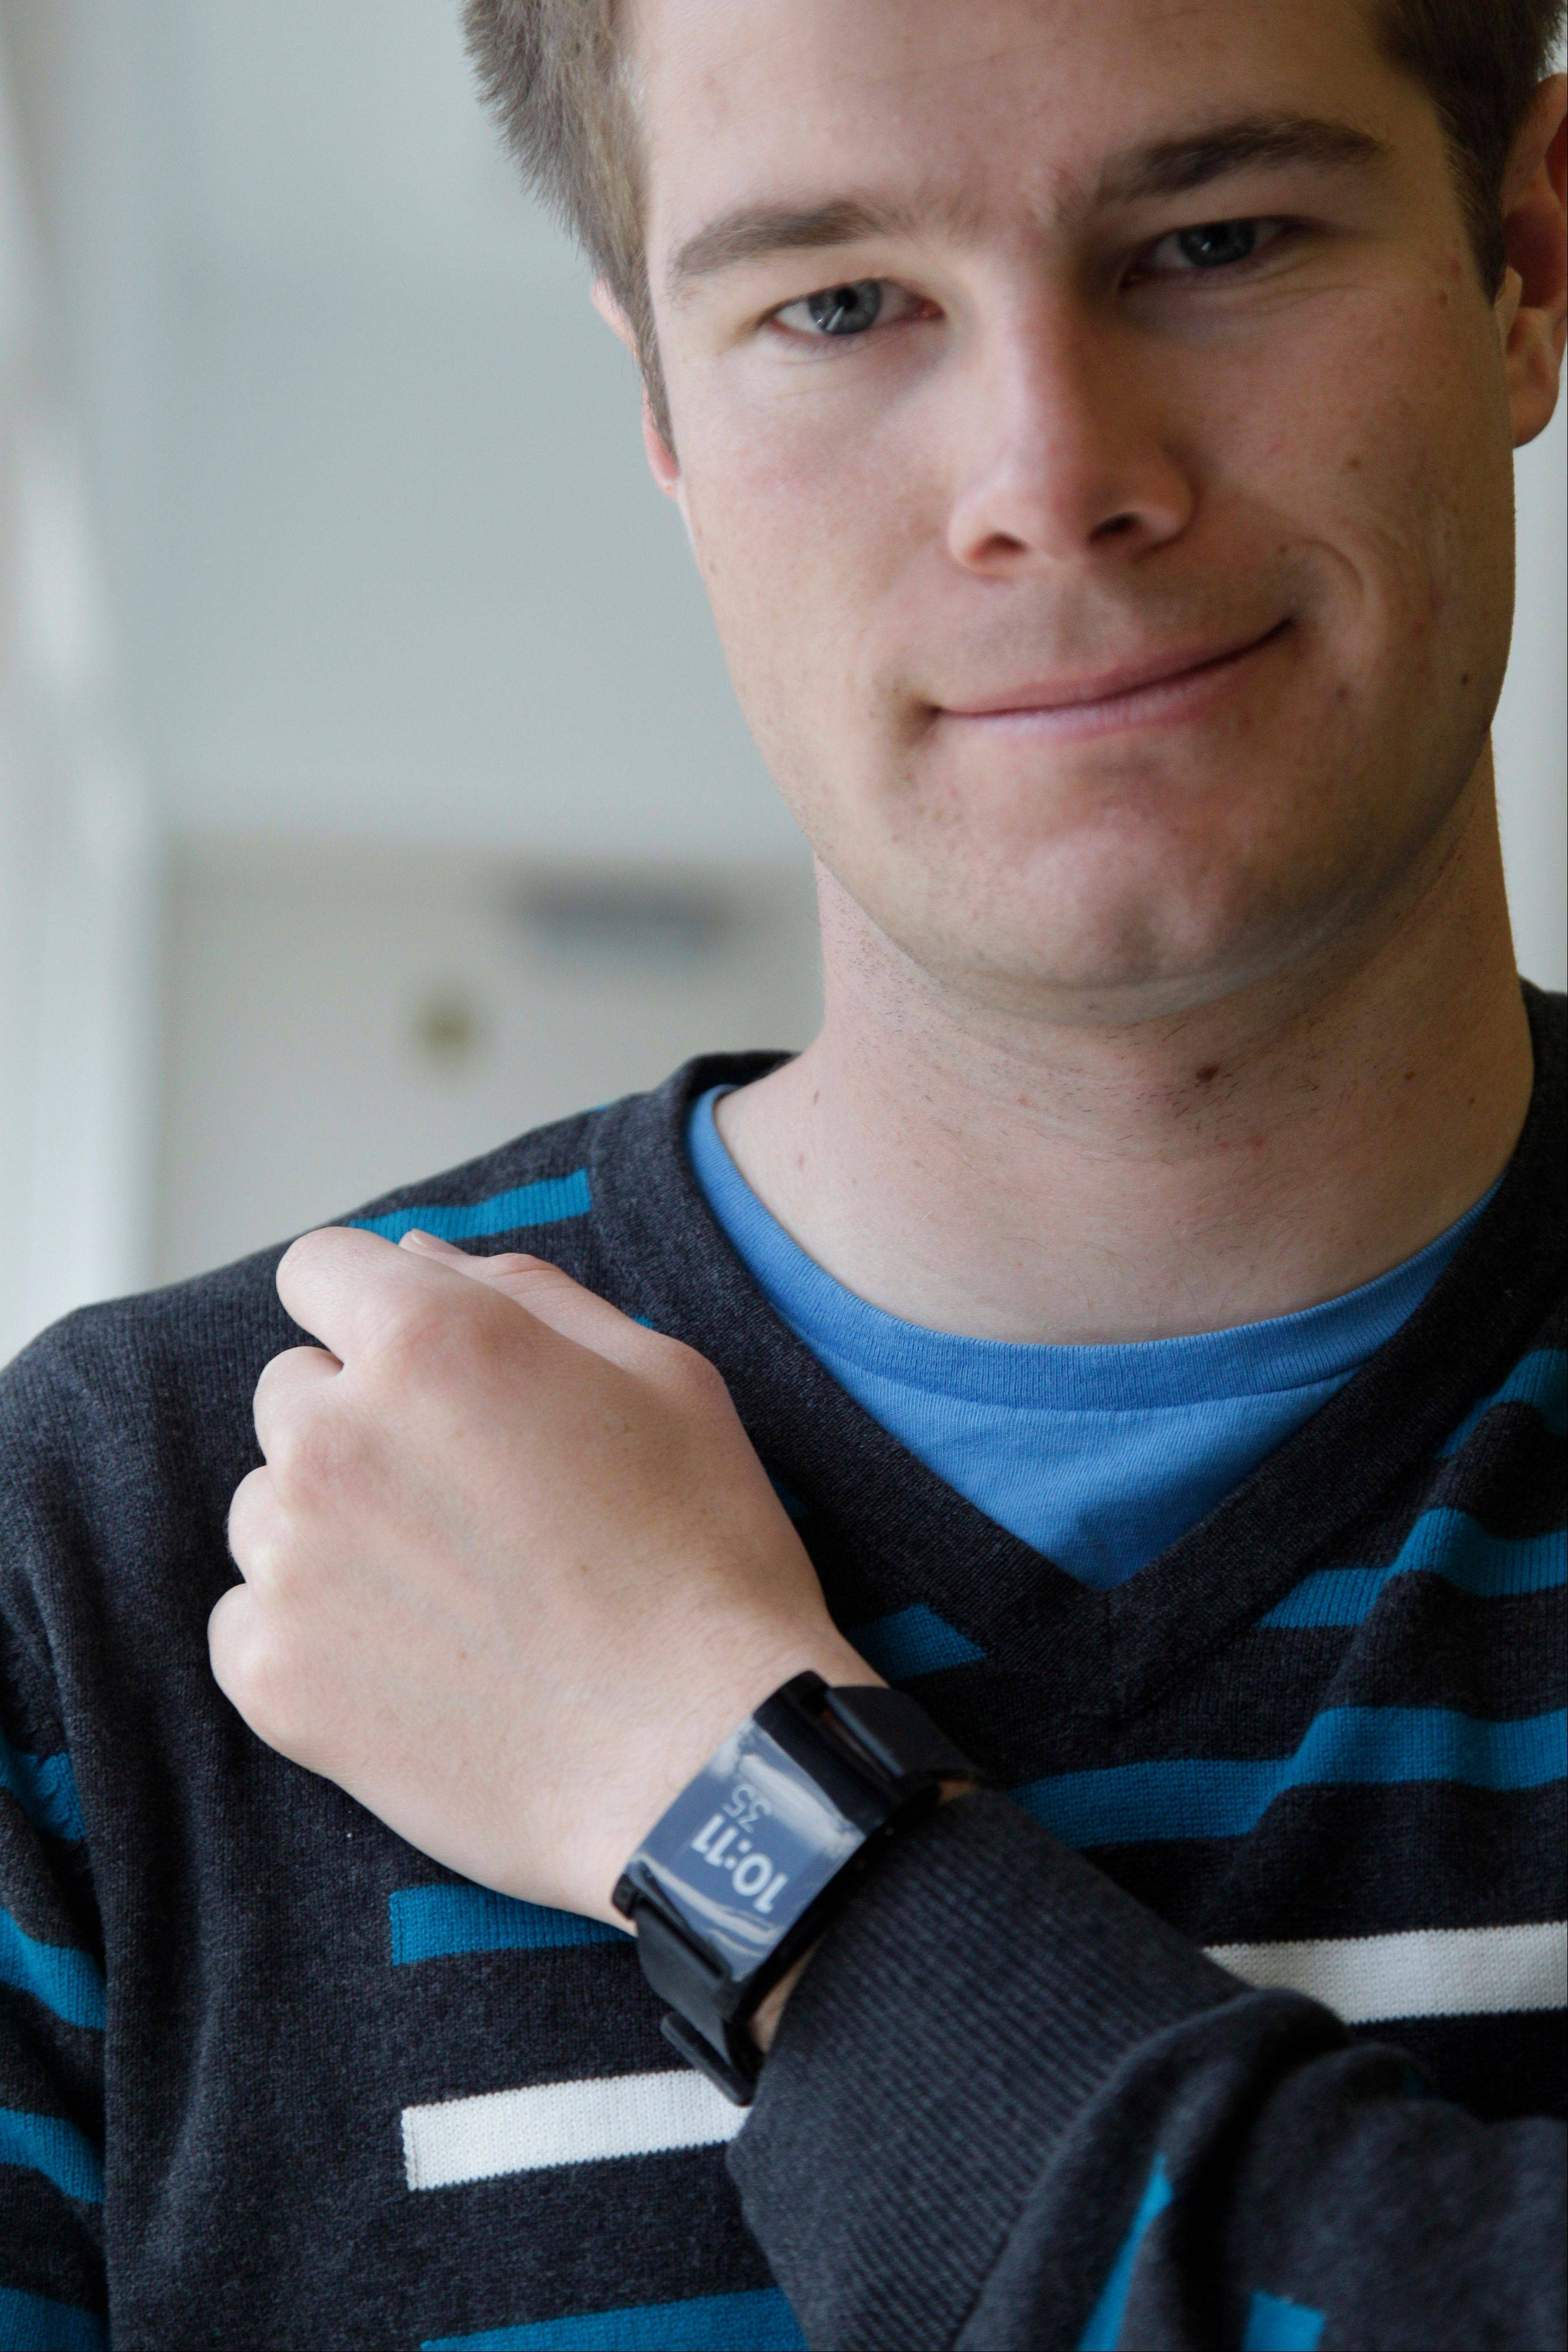 Pebble Technology founder Eric Migicovsky wearing the Pebble watch, in New York.